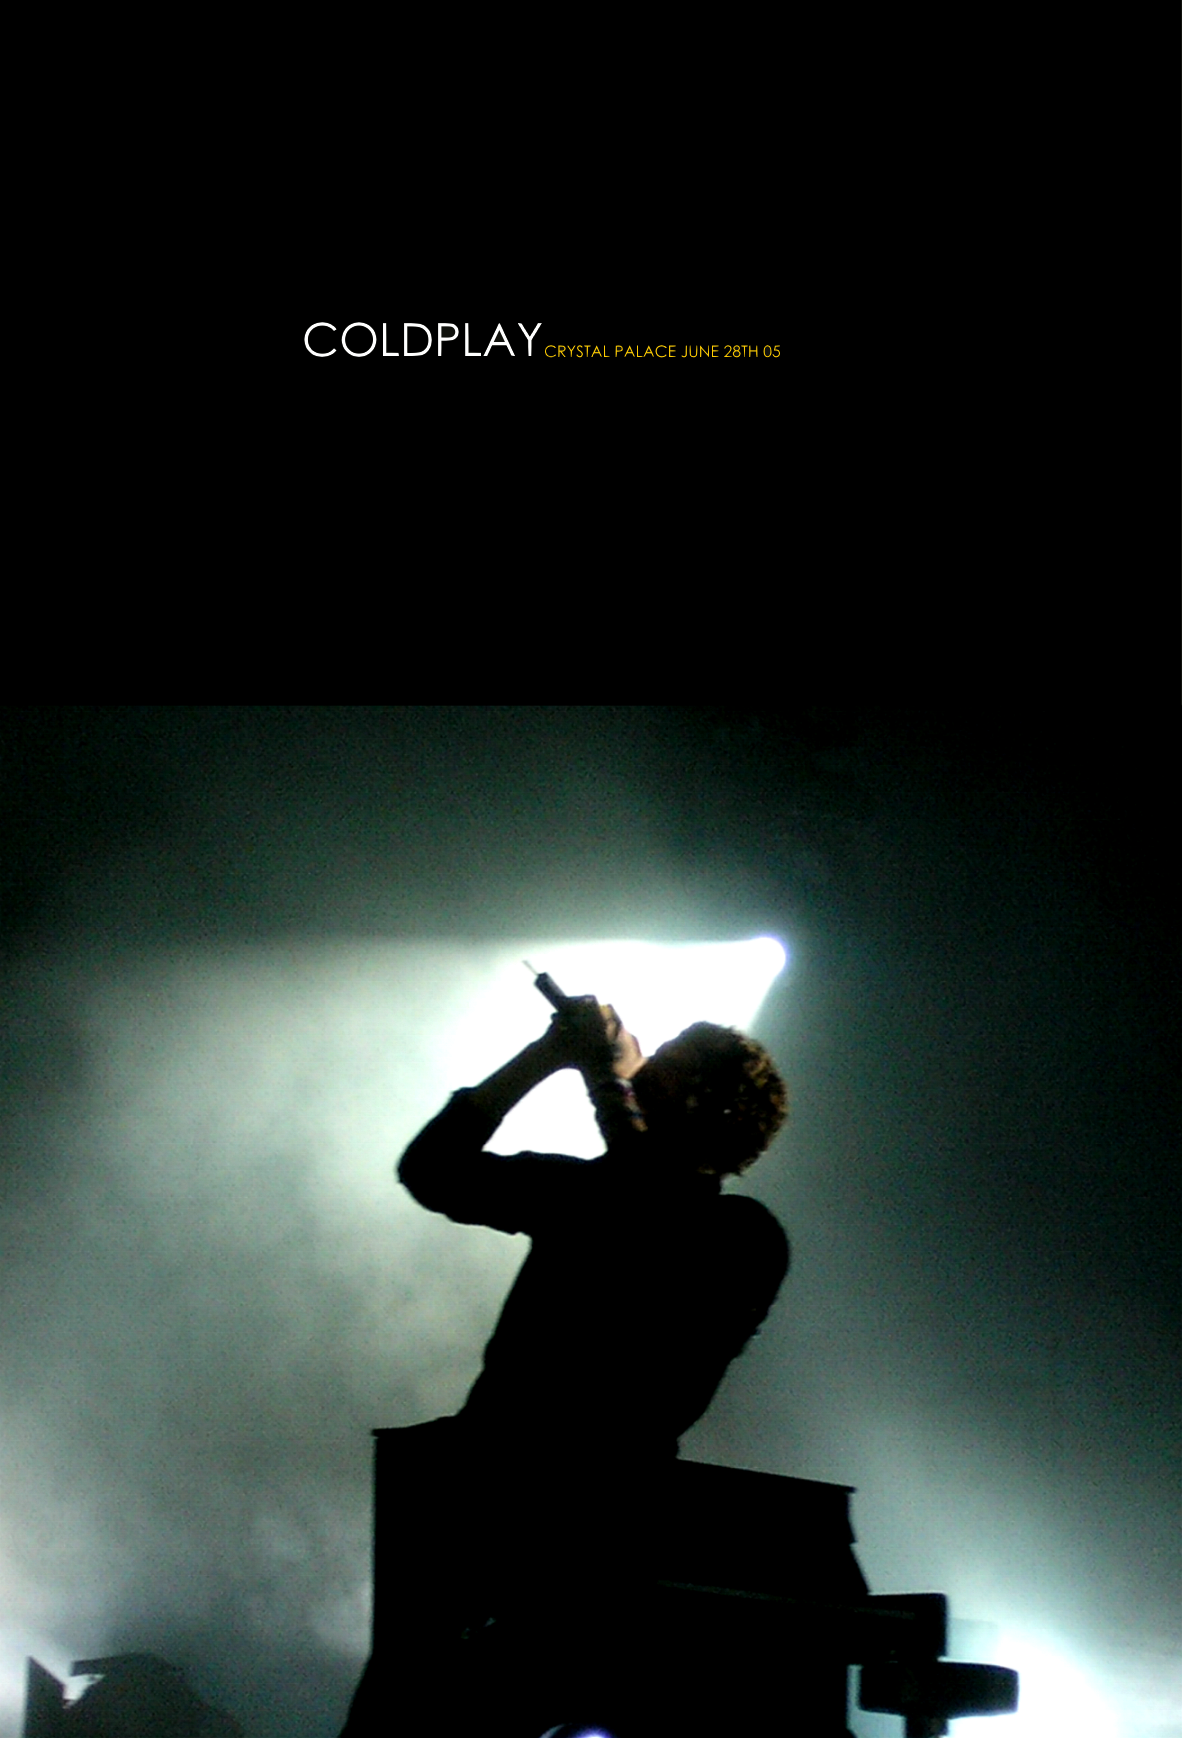 Coldplay live 2 by dom inater on deviantart coldplay live 2 by dom inater voltagebd Choice Image